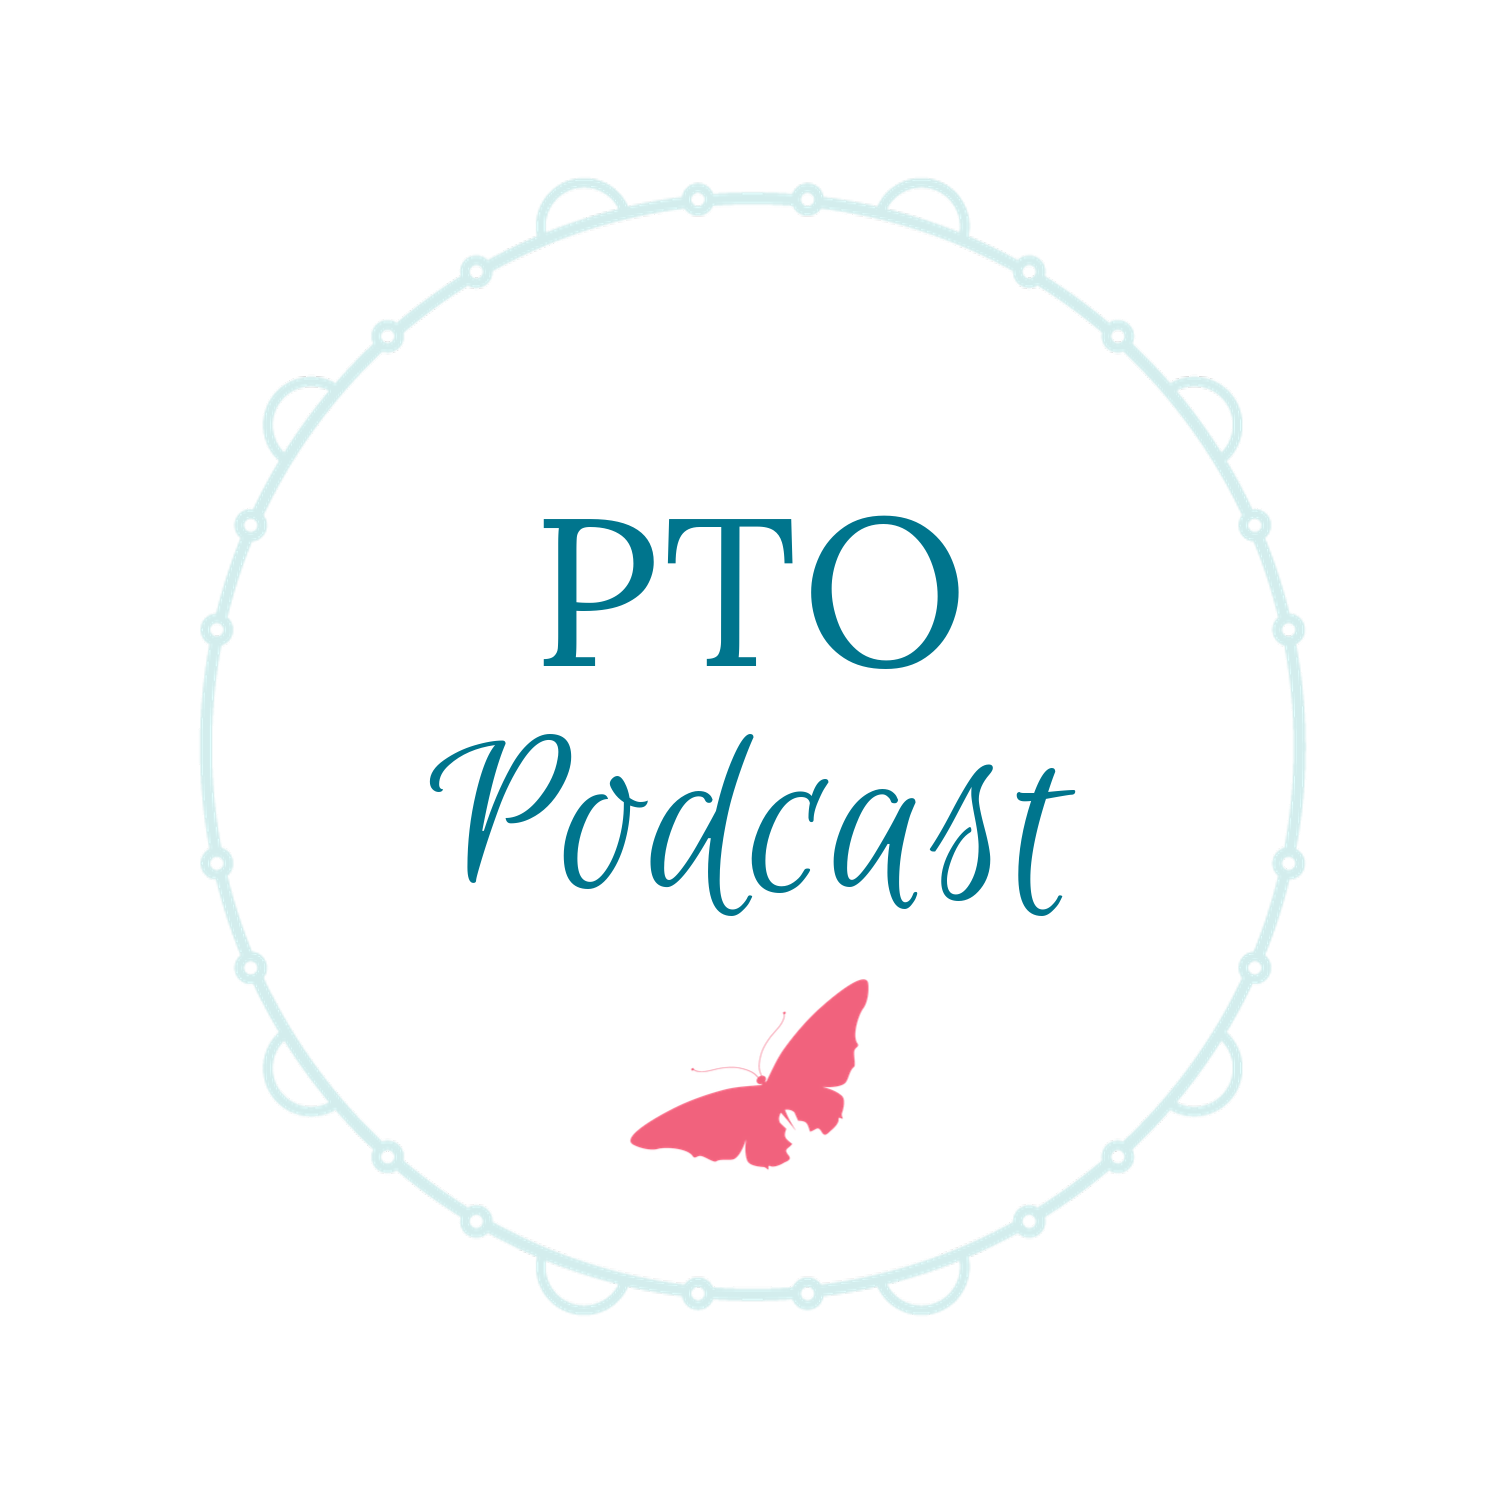 PTO Podcast Logo for iTunes.png